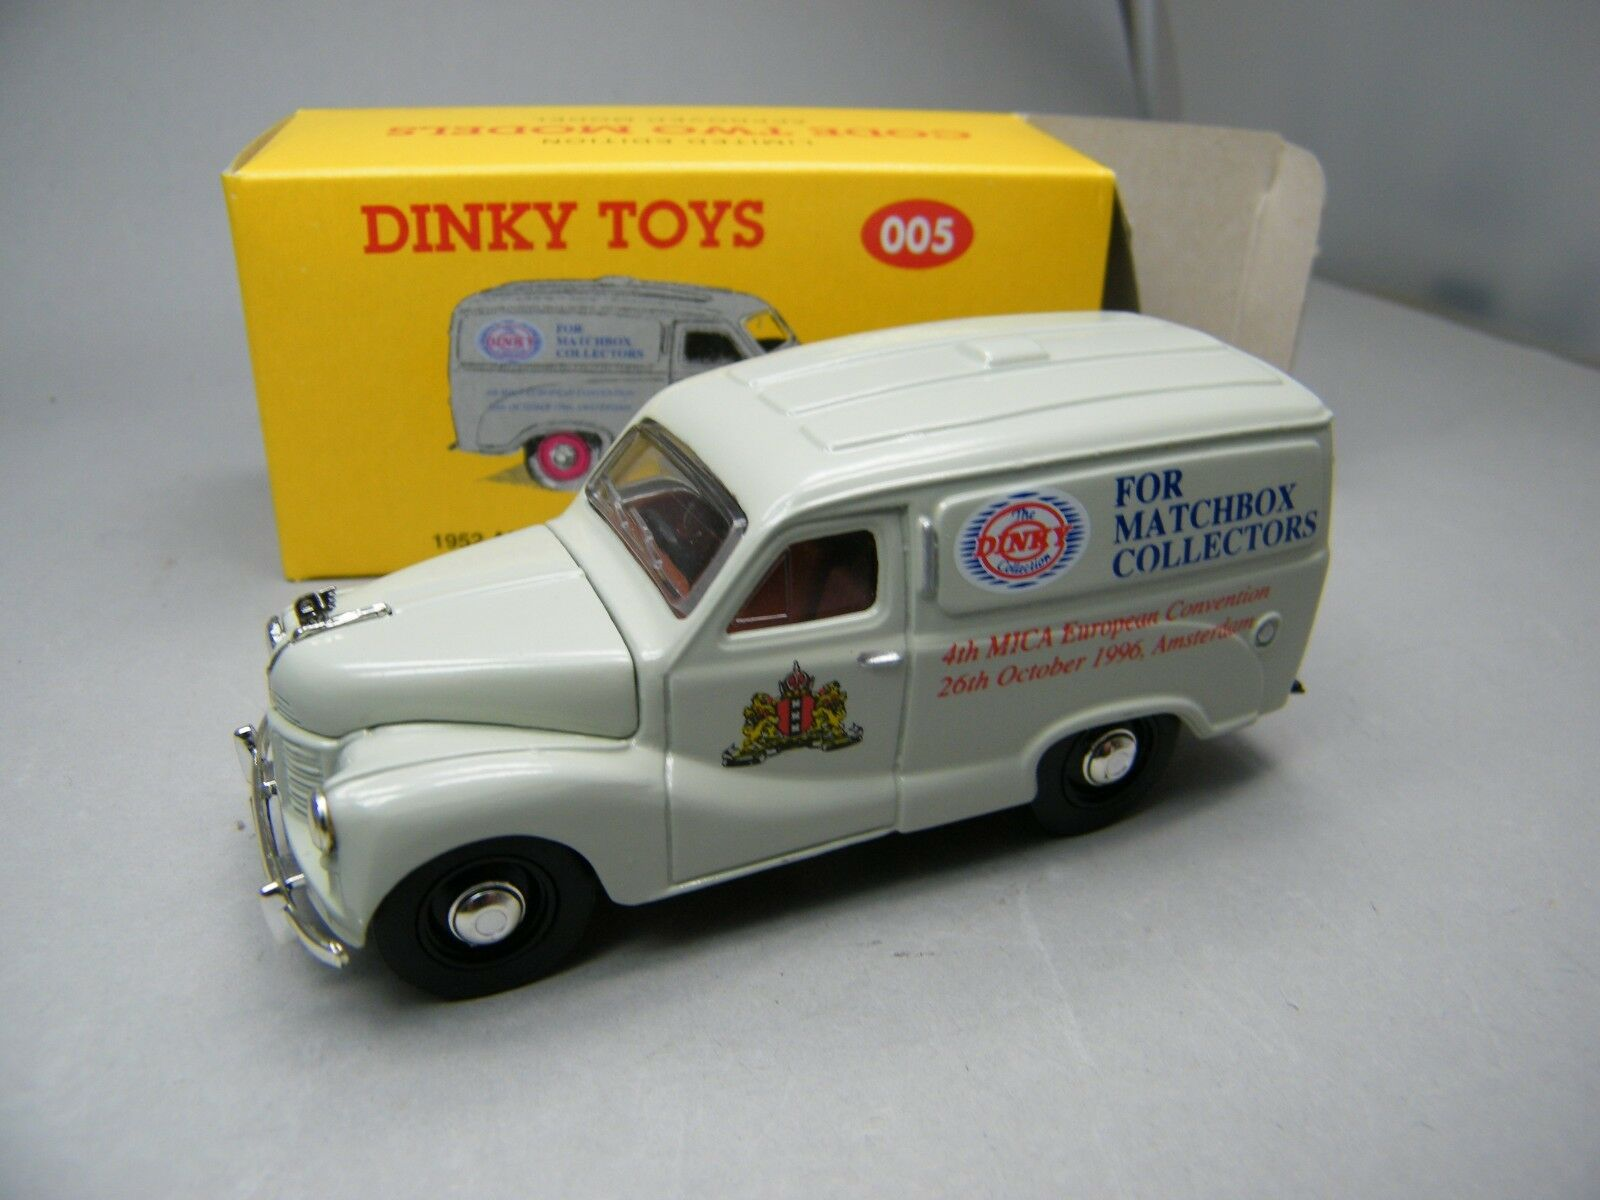 Matchbox MOY c2 Dinky 005 Delivery Van 1996 from m2 Set Very Rare Boxed k13